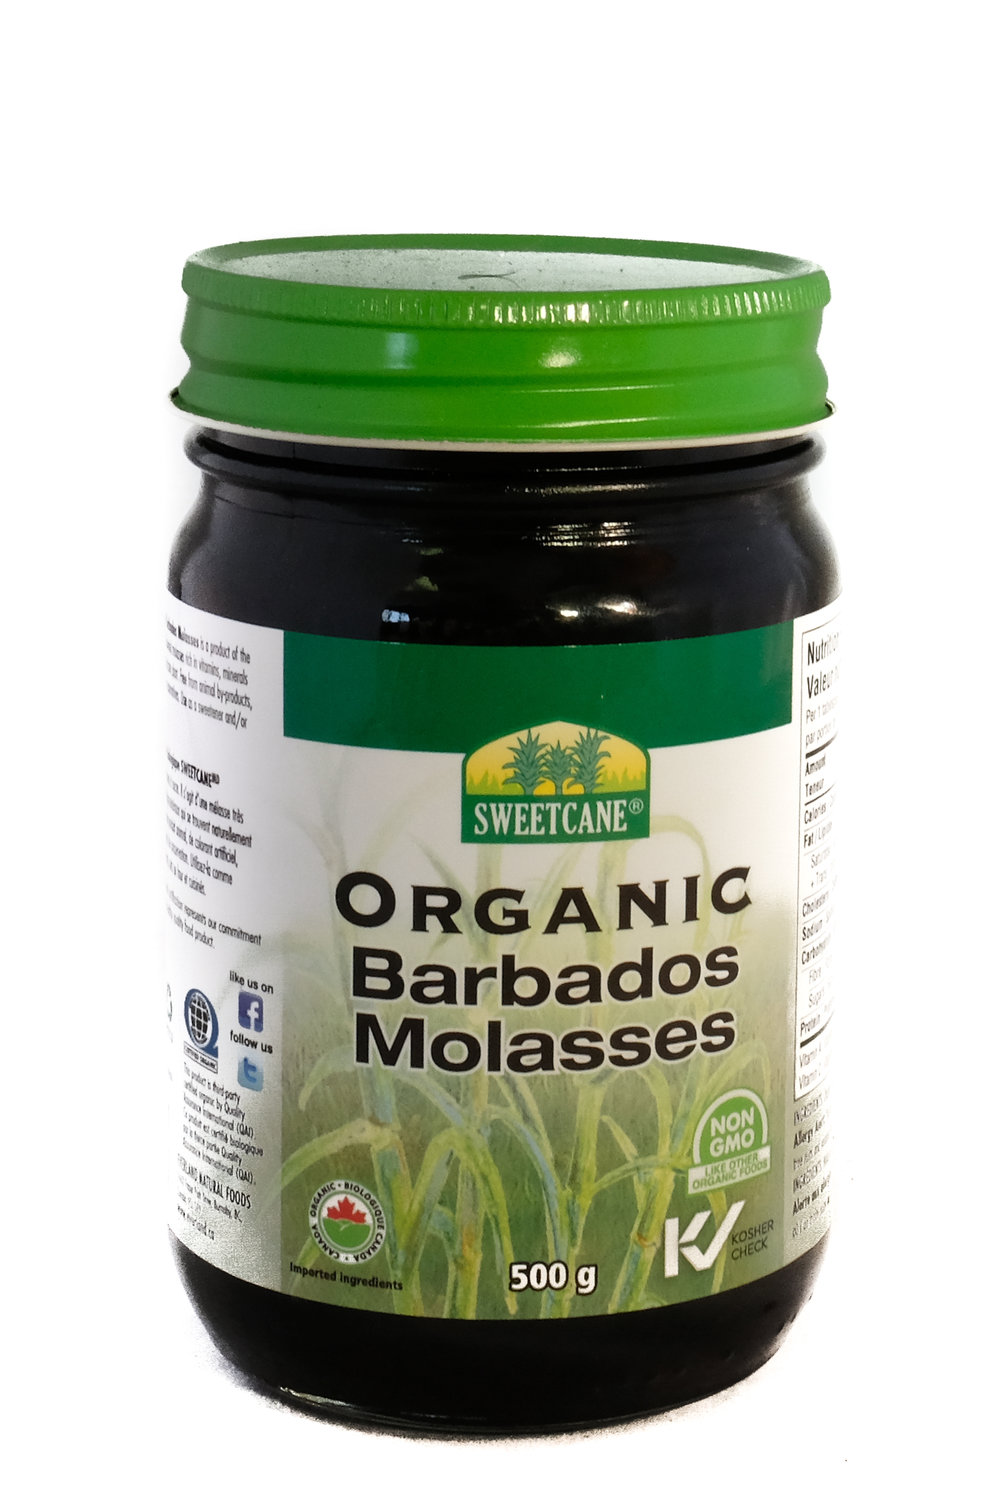 Organic Barbados Molasses